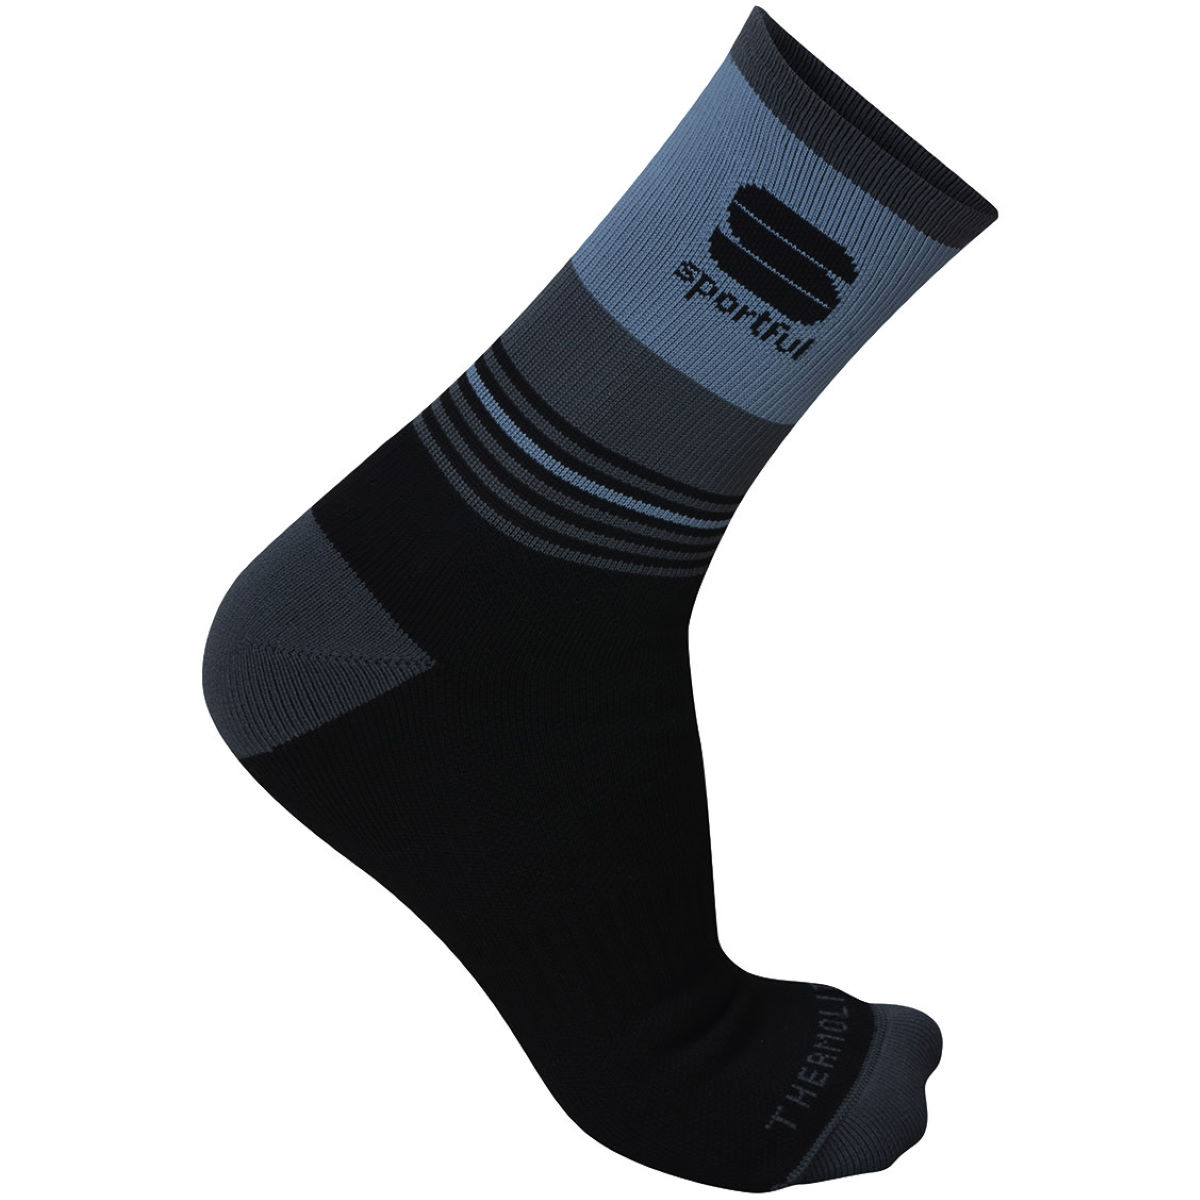 Image of Chaussettes Sportful Arctic 13 - S Black/Anthracite   Chaussettes